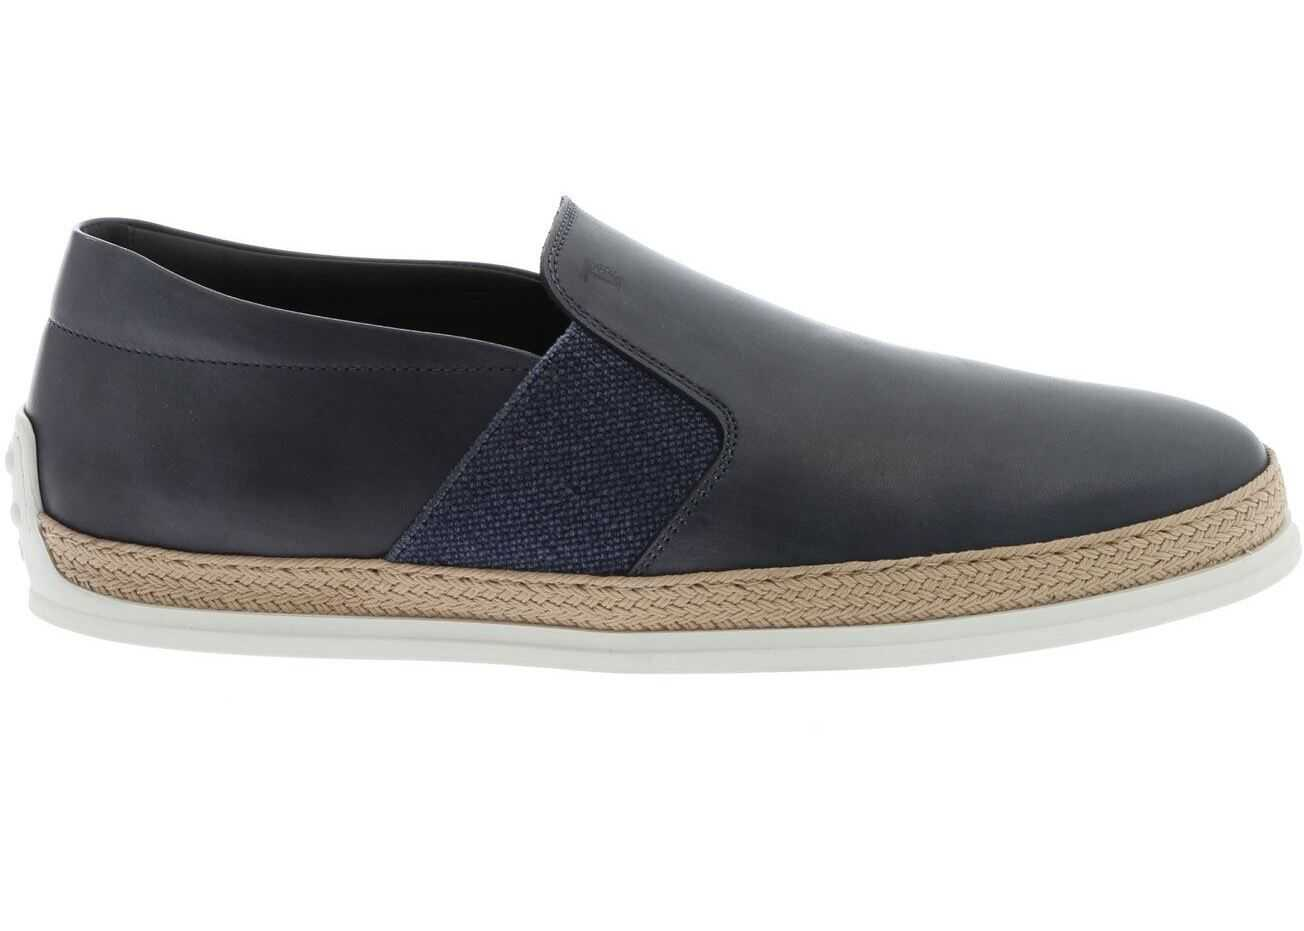 TOD'S Slip-On In Blue With Rope Effect Insert XXM0TV0V530D9CU817 Blue imagine b-mall.ro